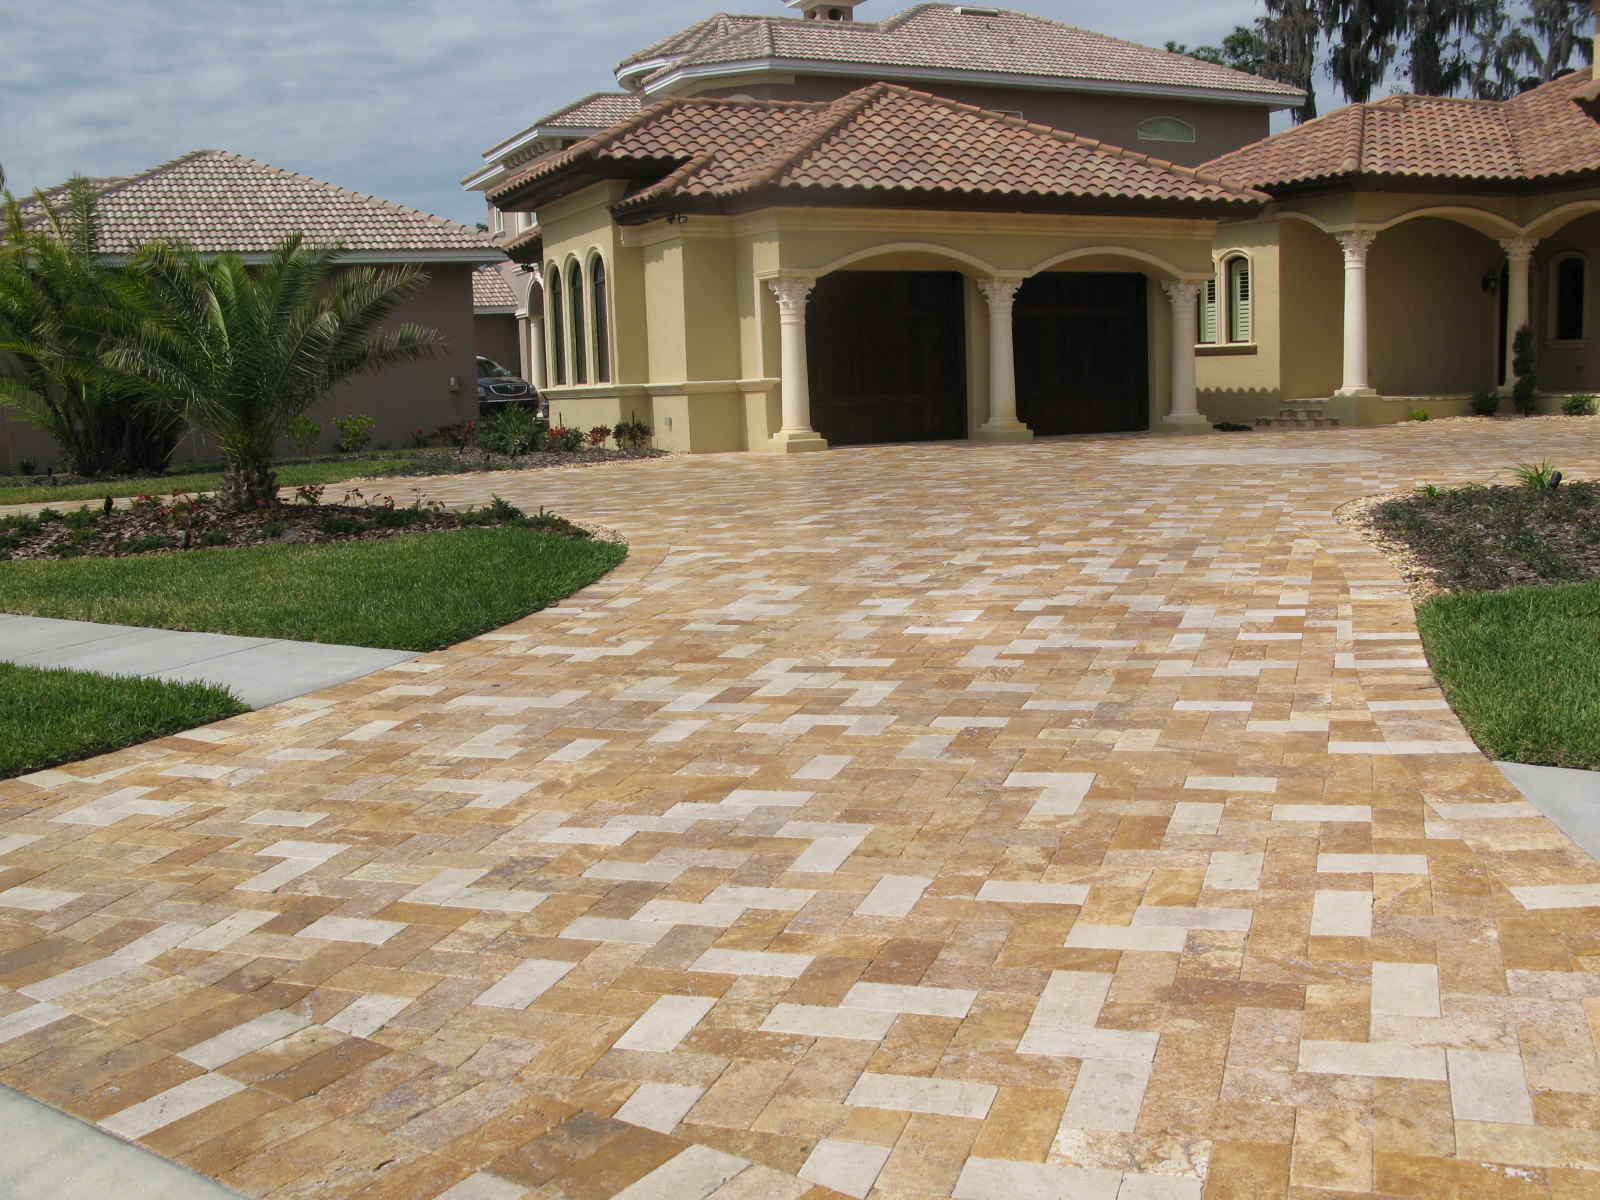 stamped concrete driveway patio design ideaseverything you need - Concrete Design Ideas